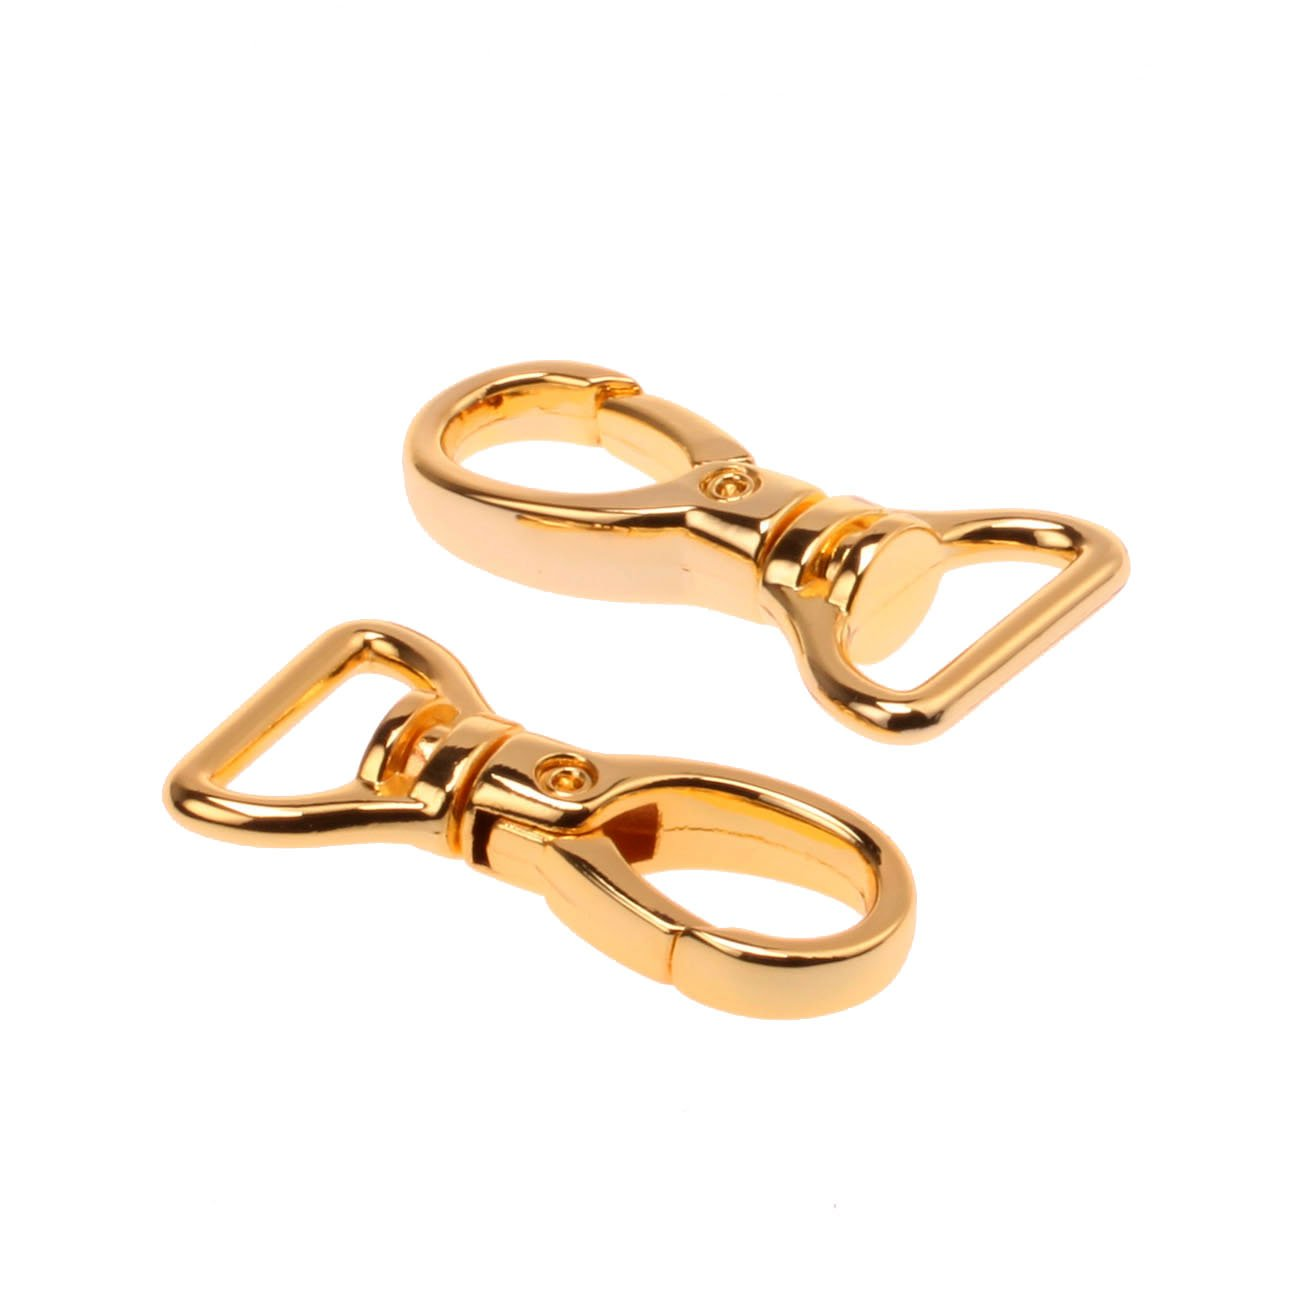 COTOWIN 3/4-inch Gold Color Curved Lobster Clasps Swivel Trigger Clips Snap (Pack of 20) by COTOWIN